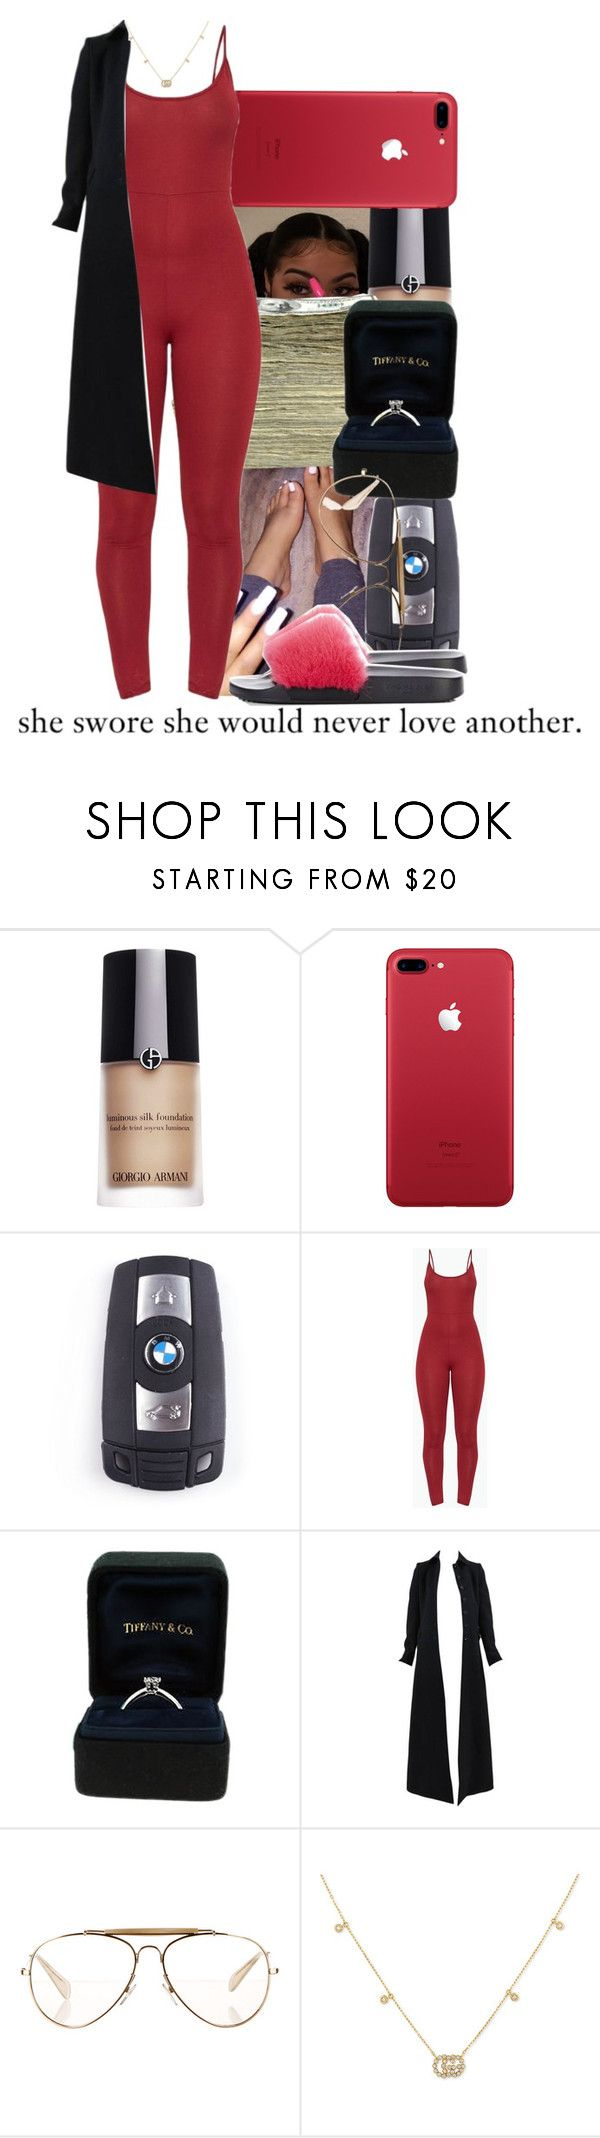 """Went go get these nail done today and bf got me a promise ring!"" by queenwhit2 ❤ liked on Polyvore featuring Giorgio Armani, SEN, BMW, Tiffany & Co., Alaïa, CÉLINE, Gucci and Givenchy"